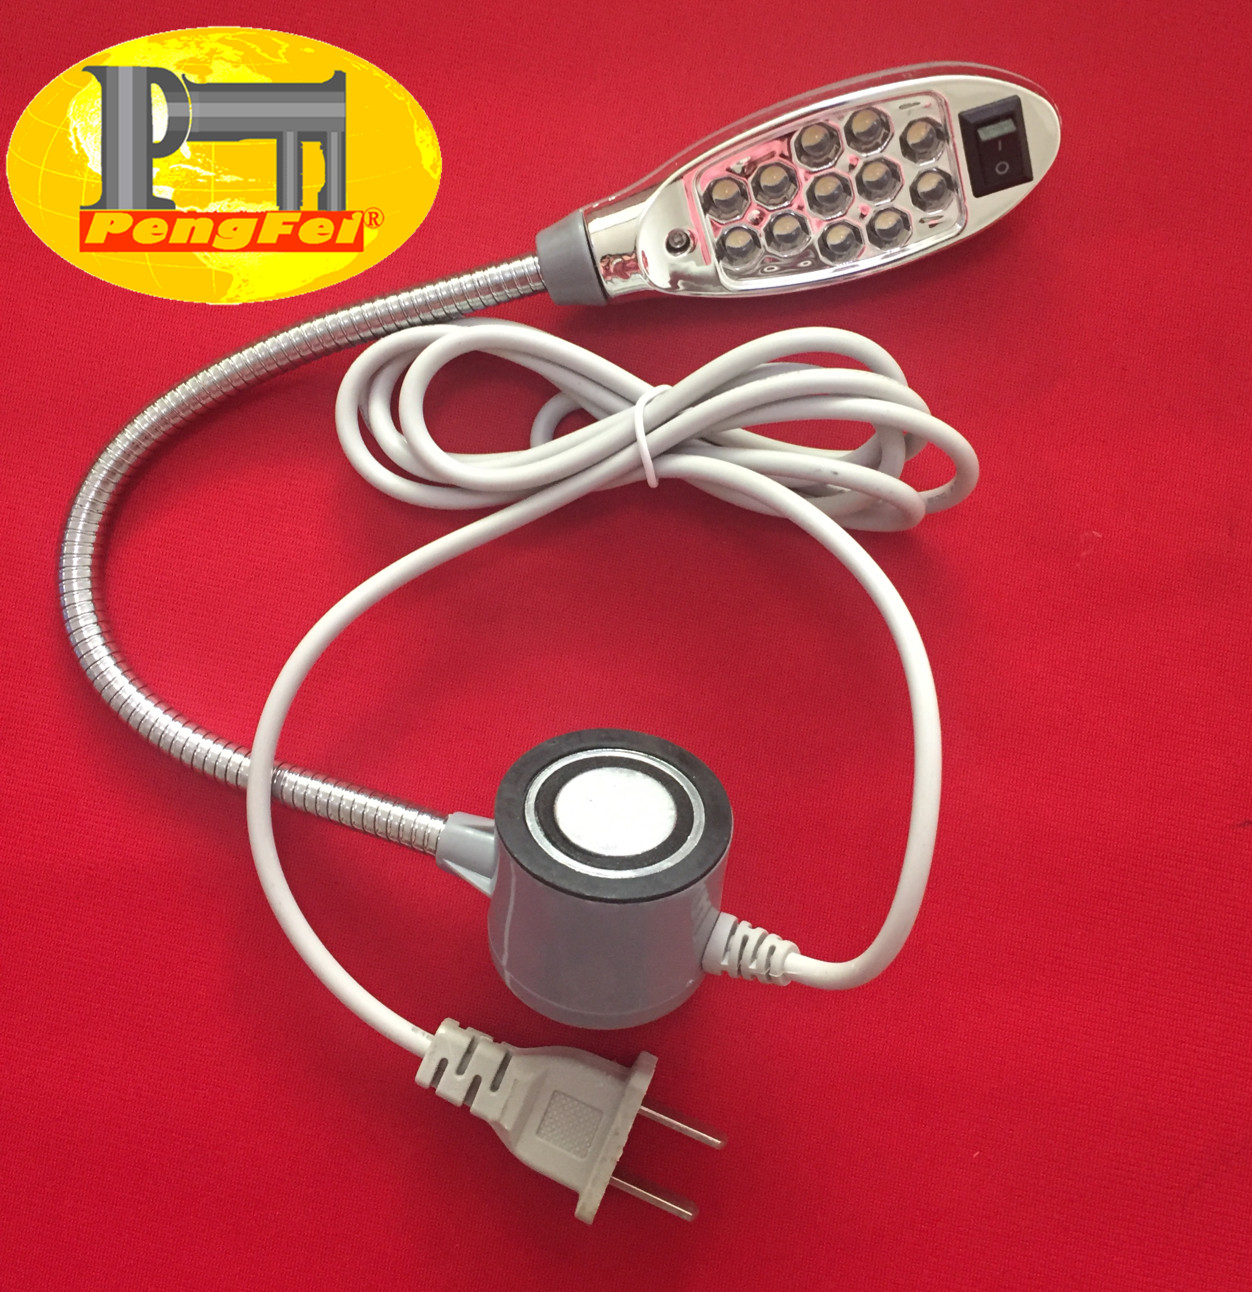 Industrial Sewing Machine Lamp HPF-812 LED Energy Saving Lamp